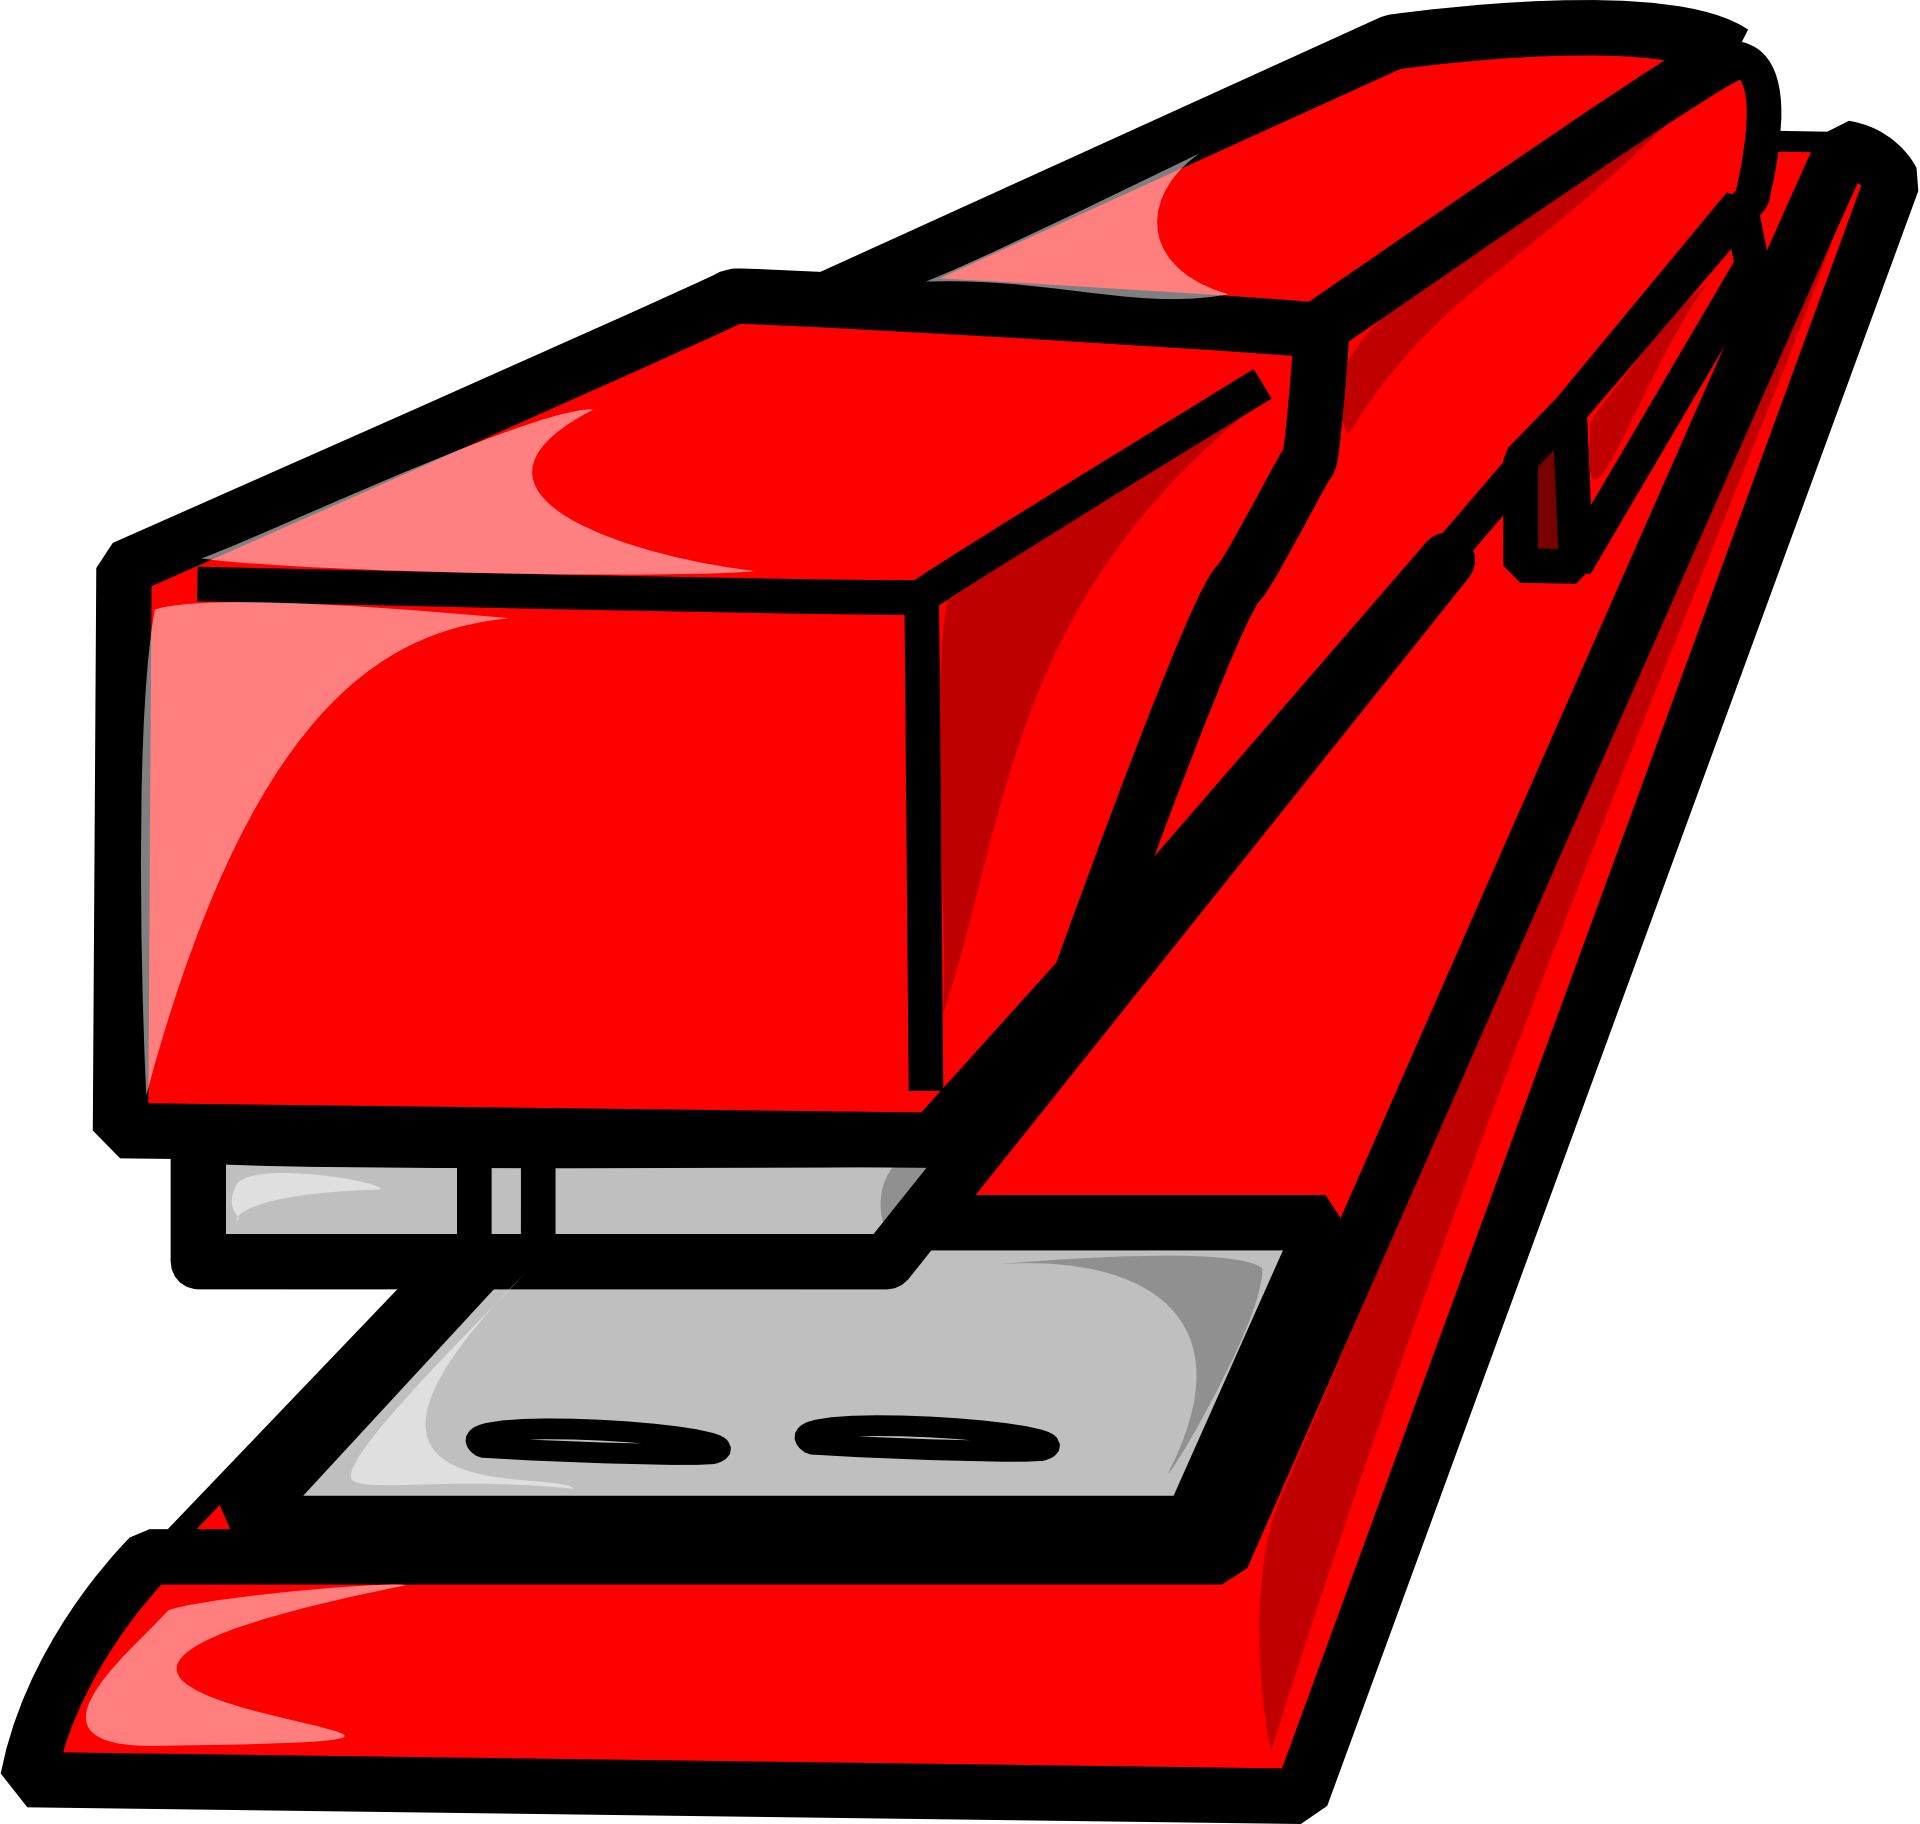 Clipart,drawn red stapler free image.